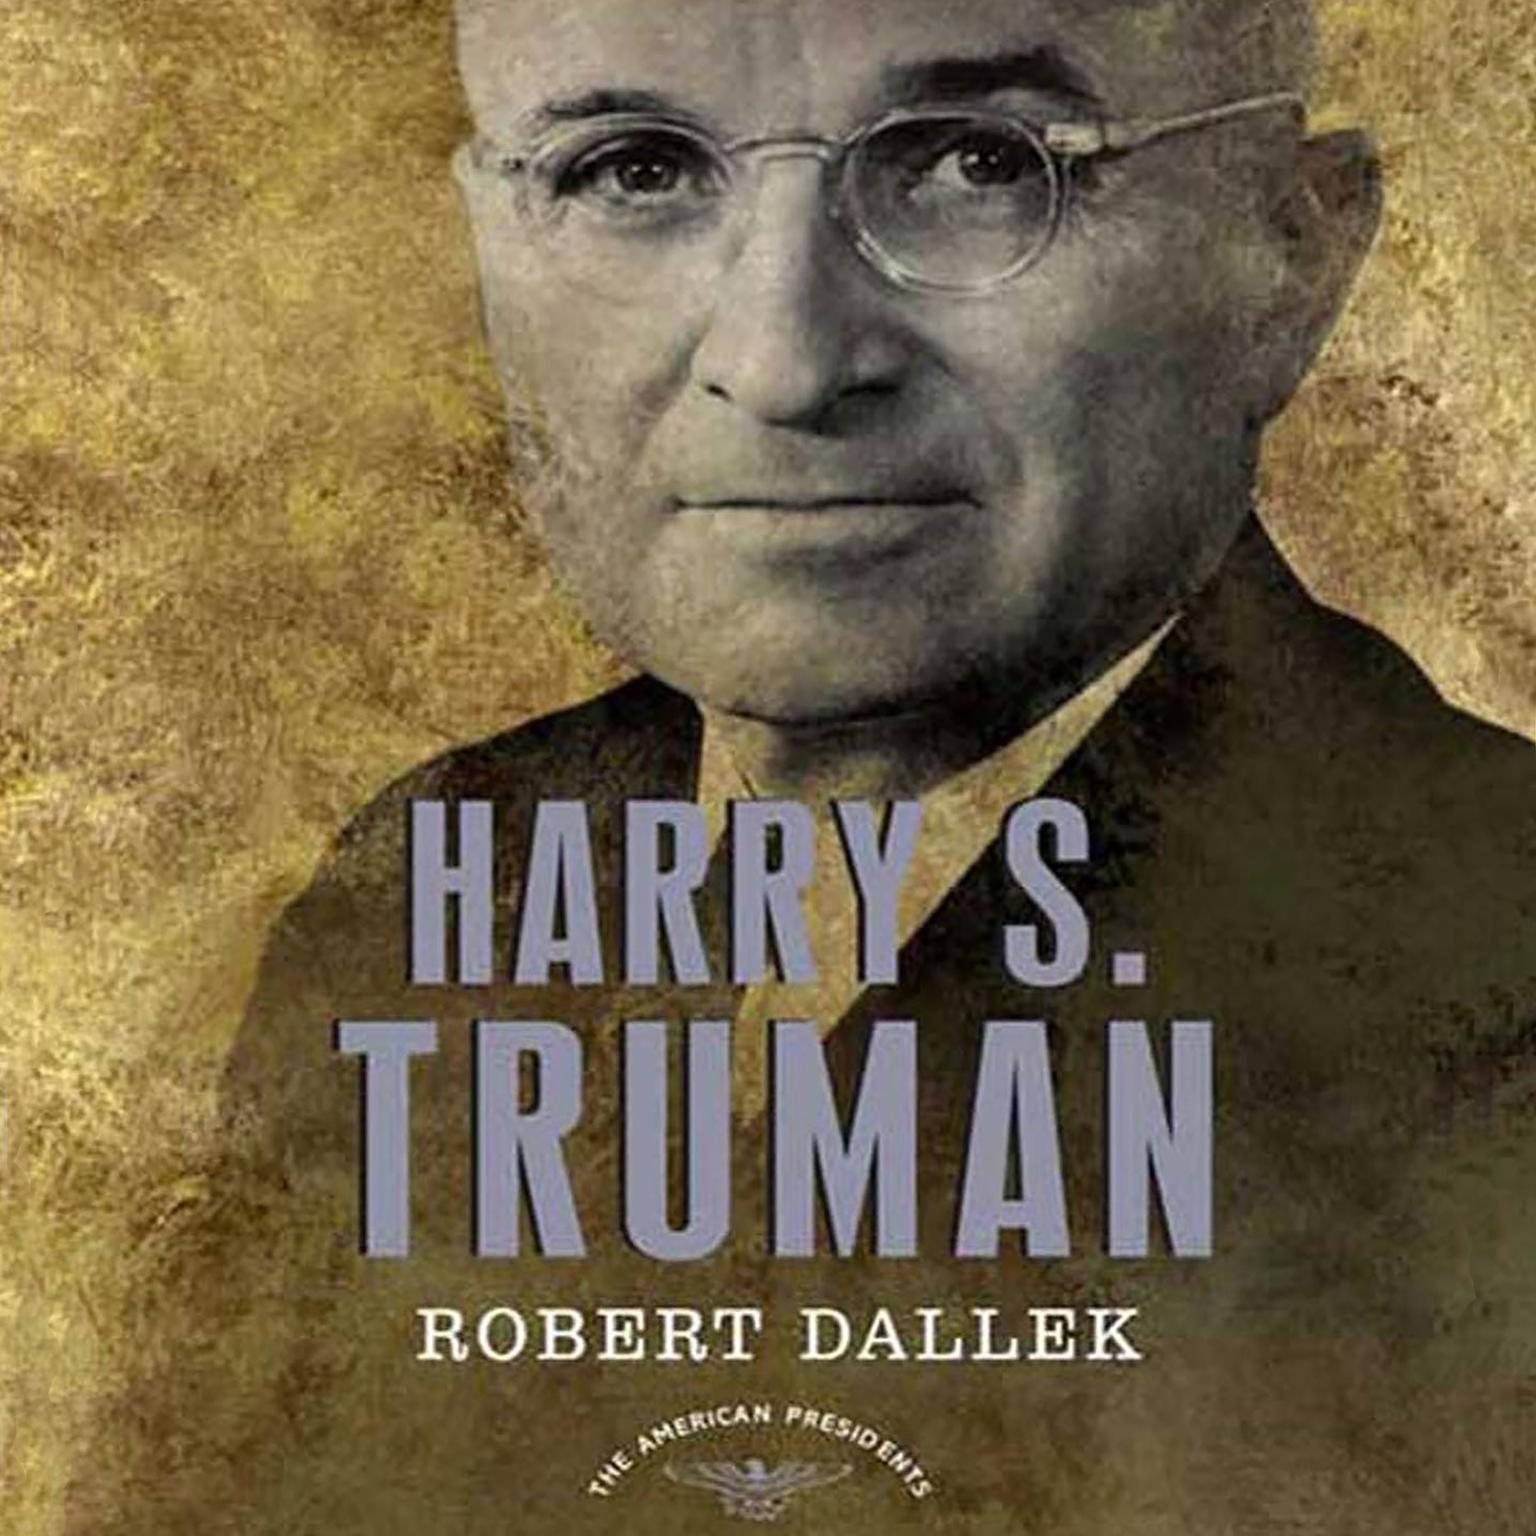 Printable Harry S. Truman: The American Presidents Series: The 33rd President, 1945-1953 Audiobook Cover Art